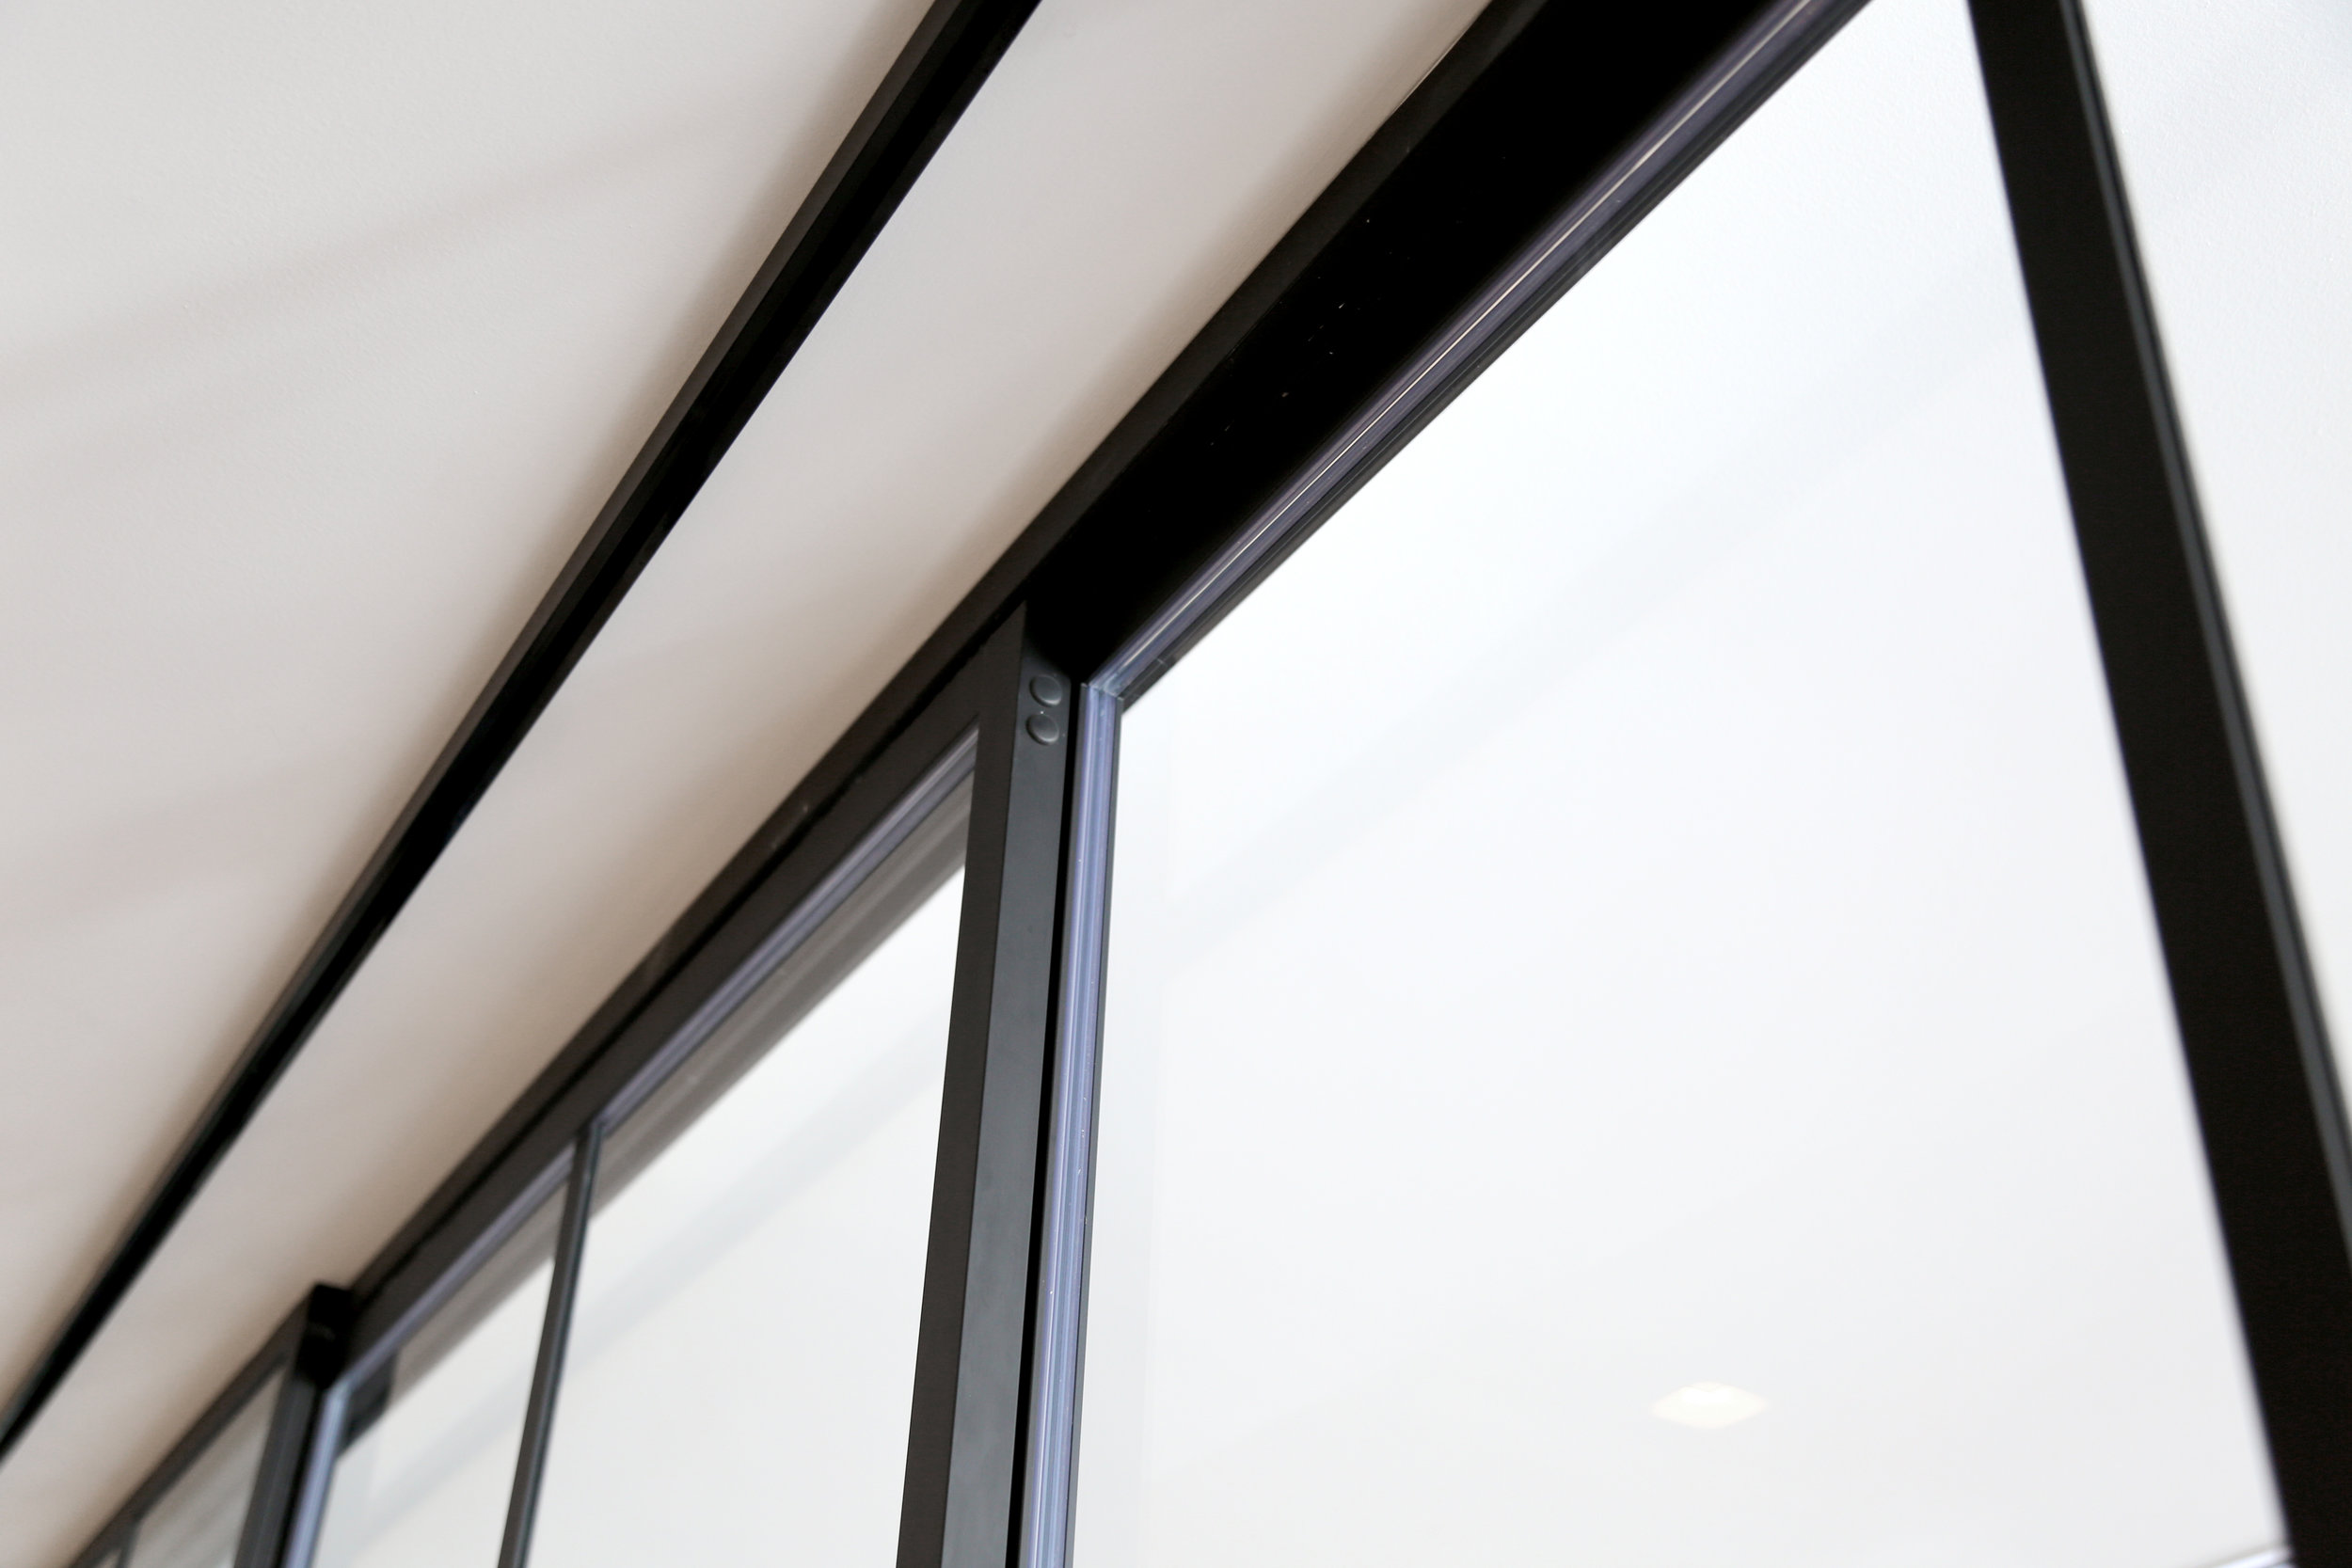 Glass Panels Black Aluminum Sliding Wall System - Spaceworks AI.jpg